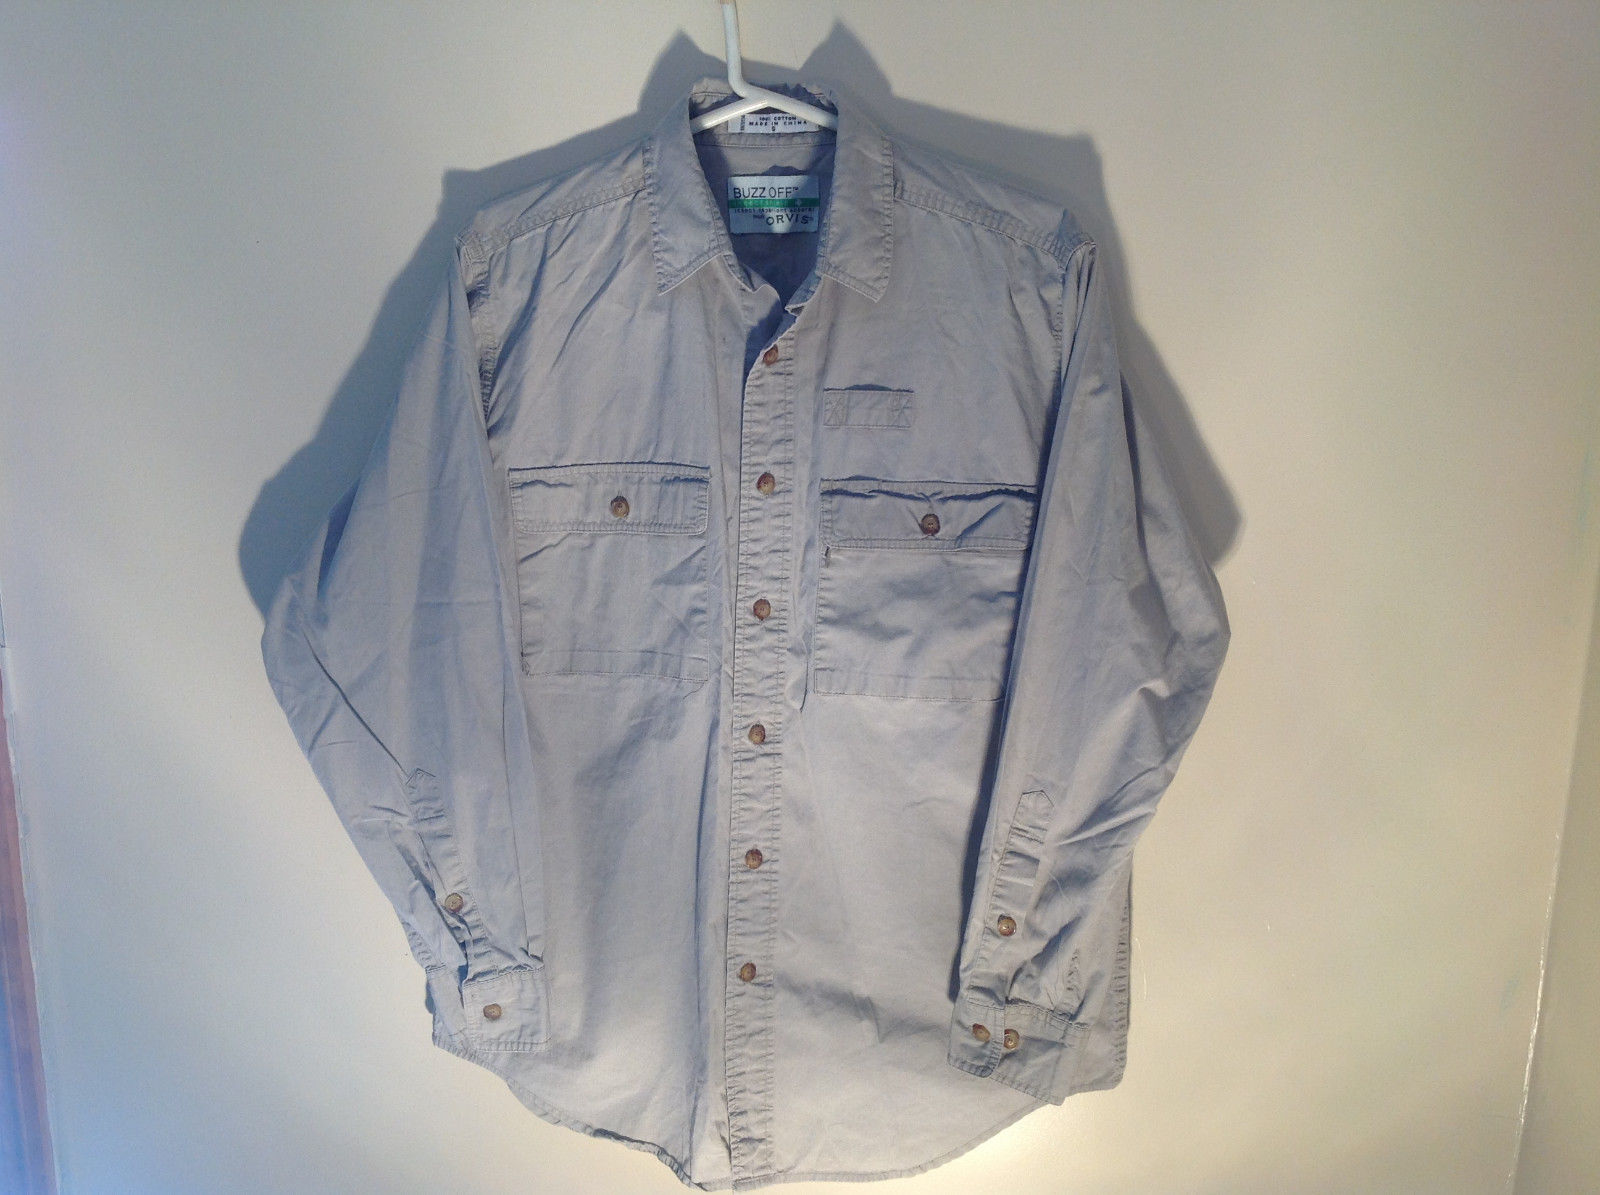 Tan Button Up BUZZ OFF Collared Casual Shirt 2 Front Pockets Size Small